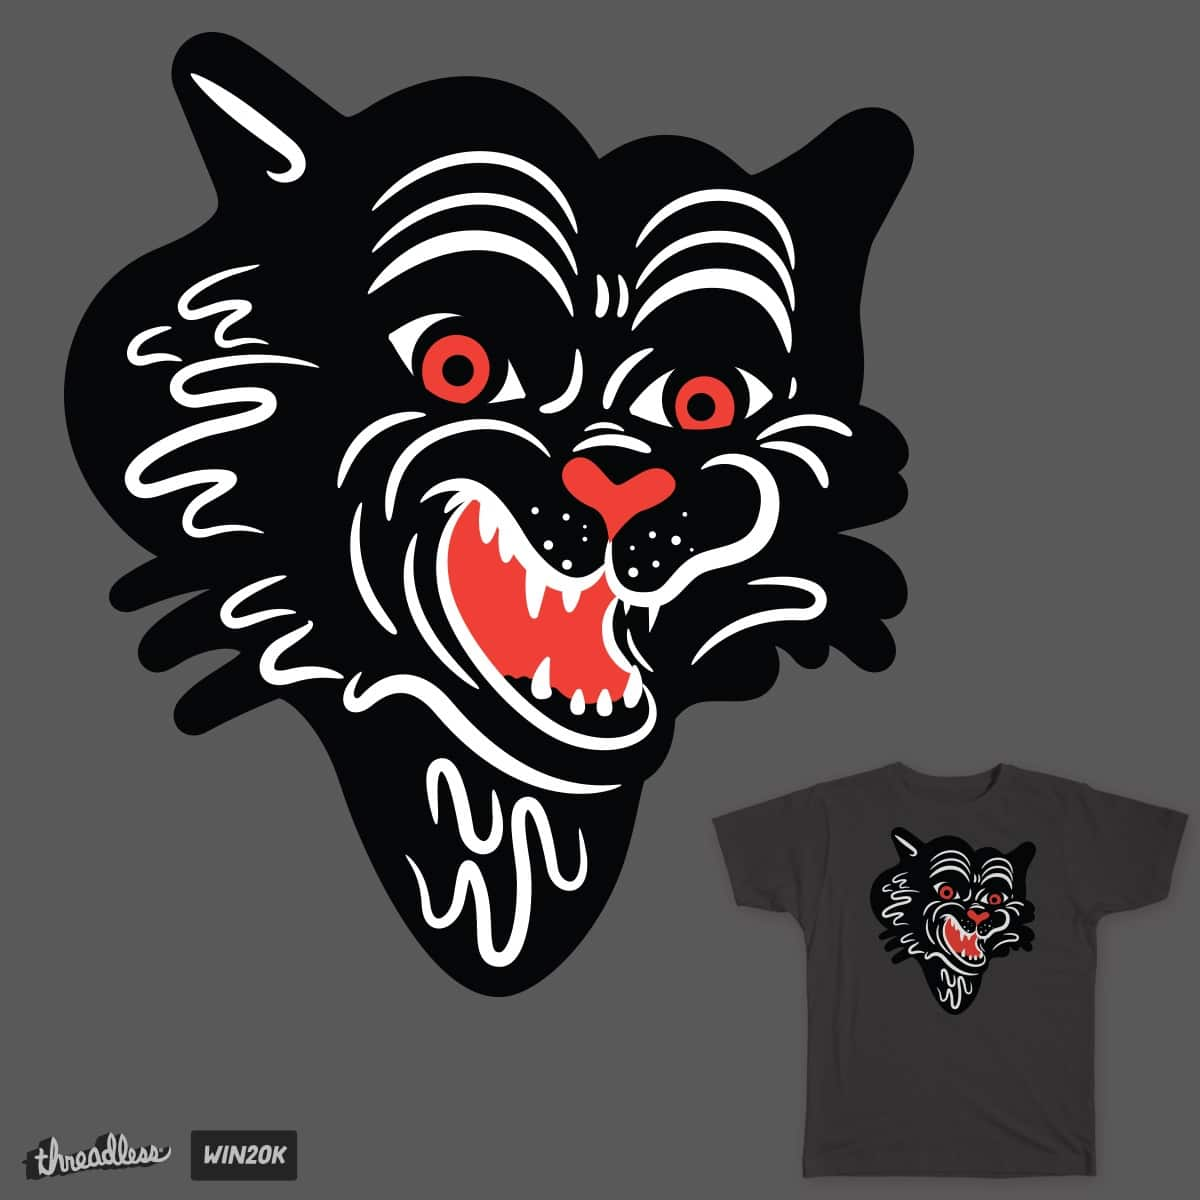 BBLK by The Bodega Negra on Threadless